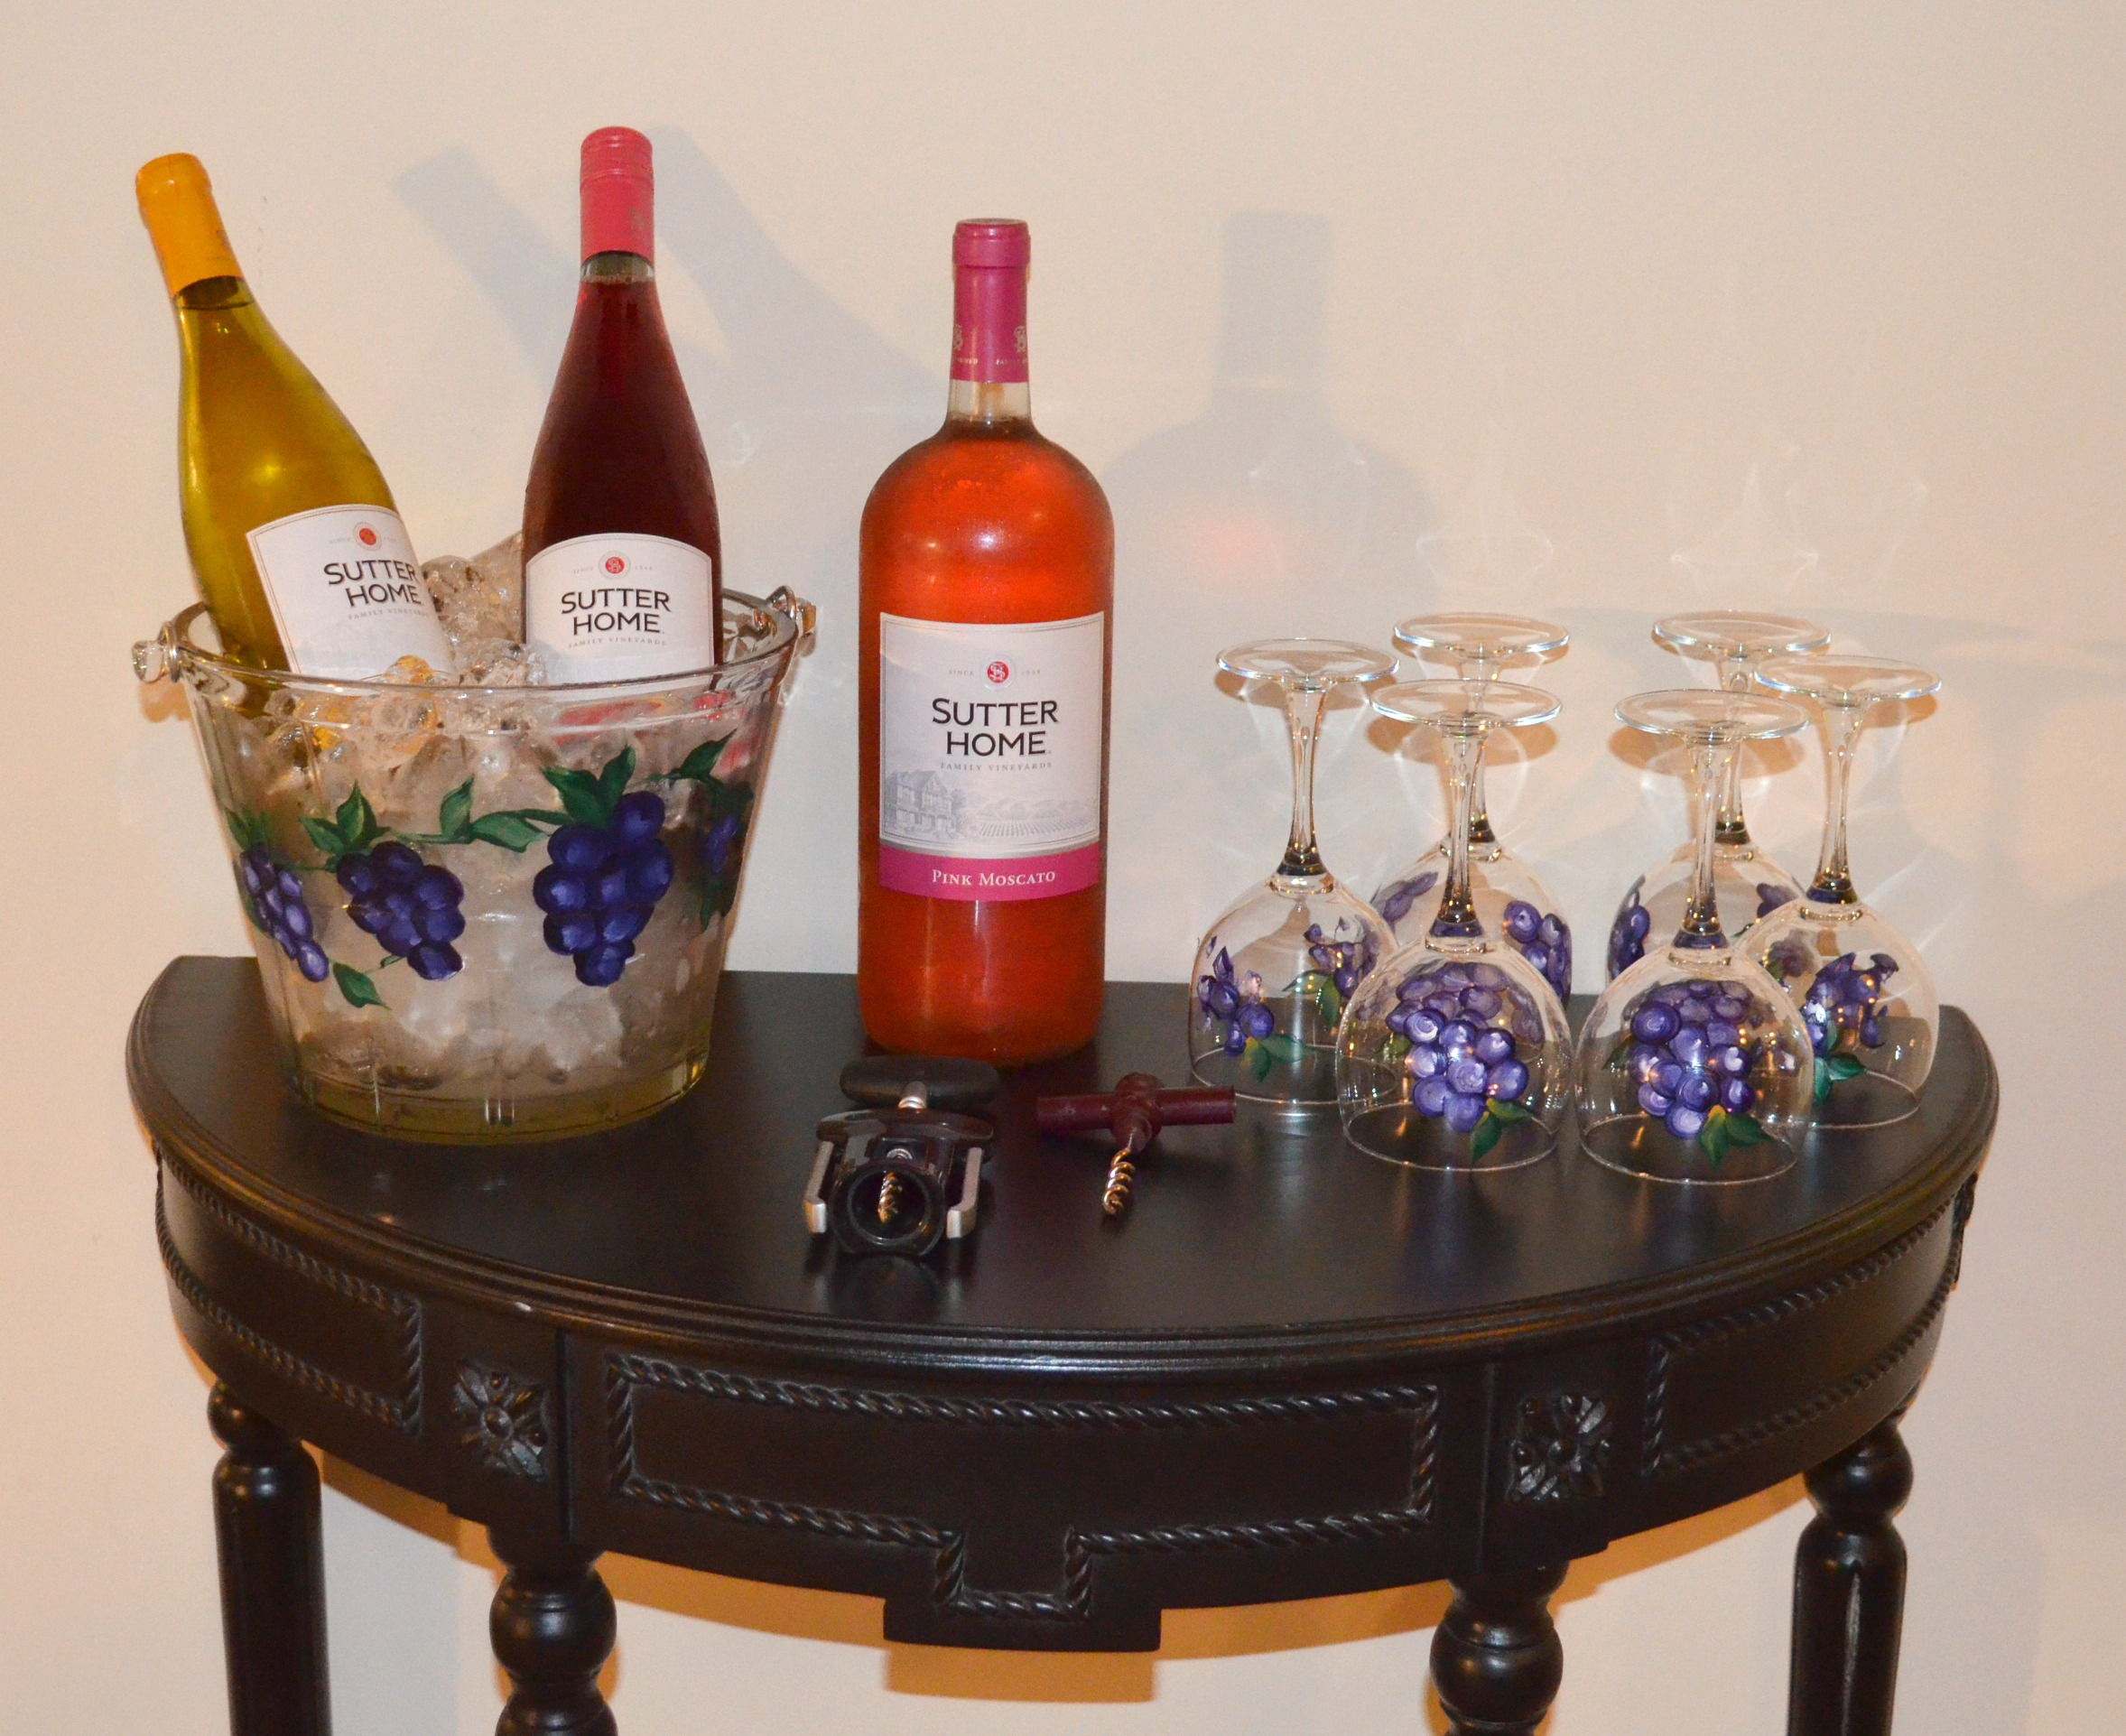 Sutter Homes Wines